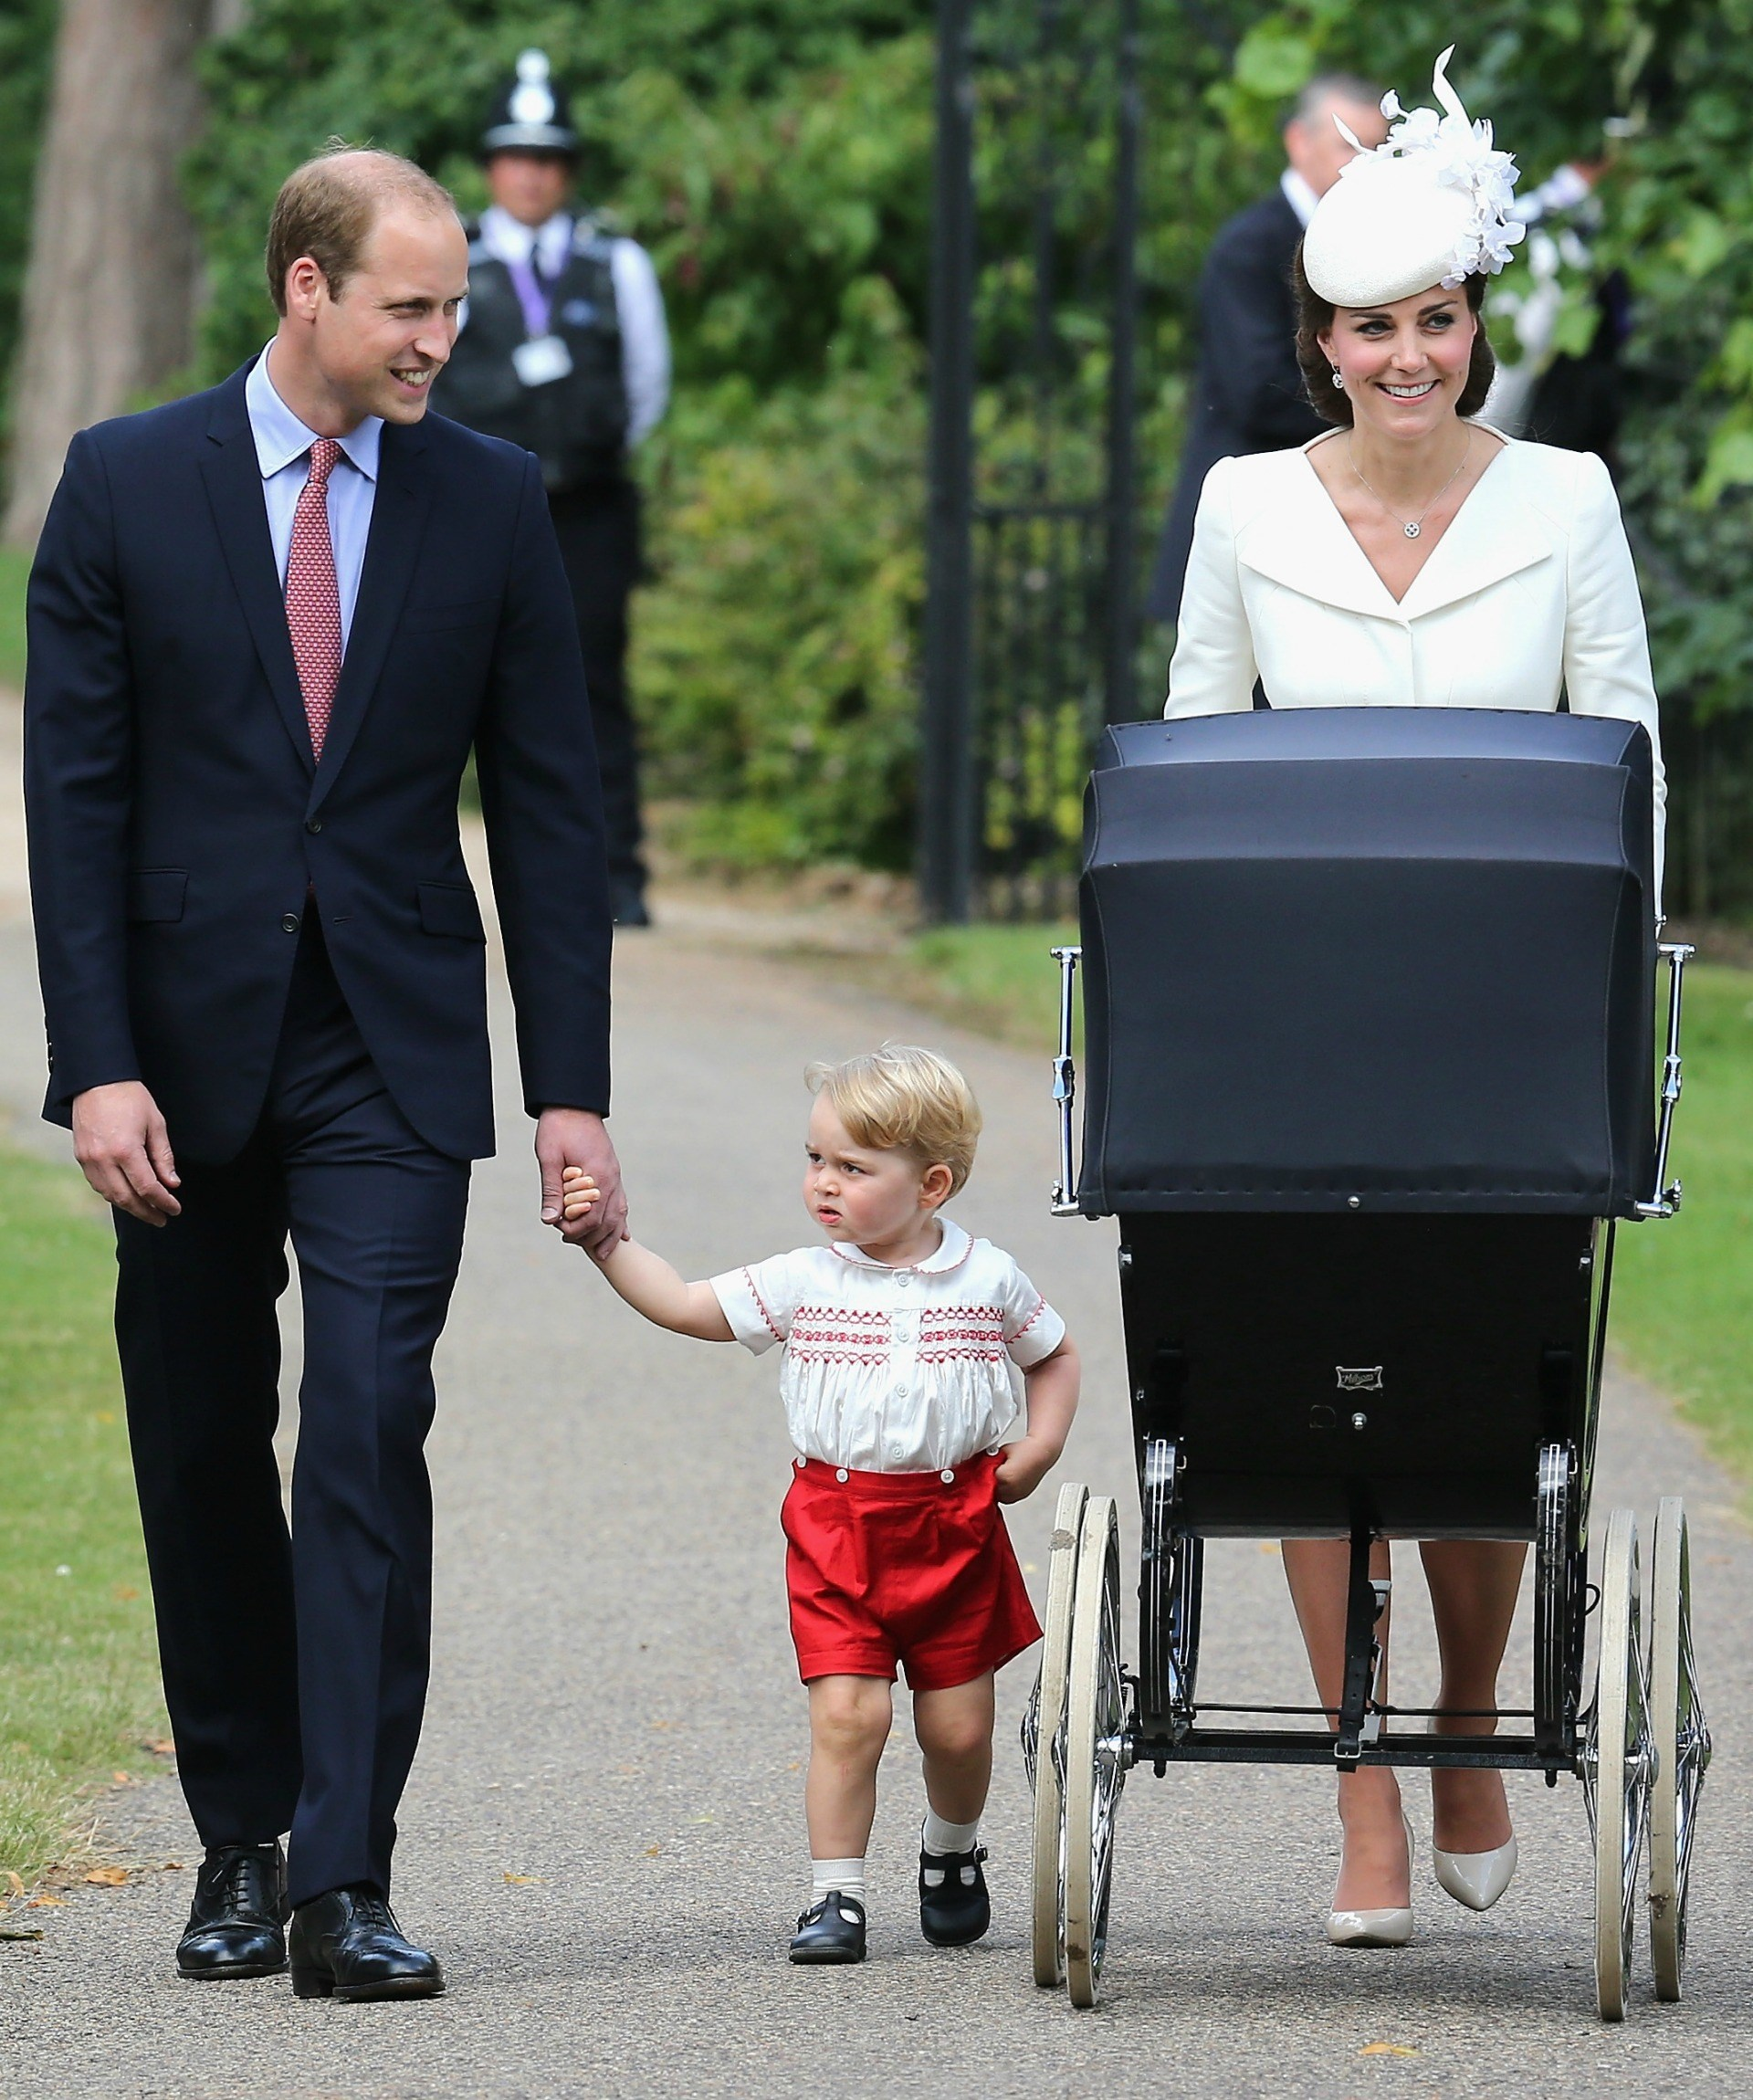 These pictures come four days after Charlotte's christening was held on Sunday, July 5.